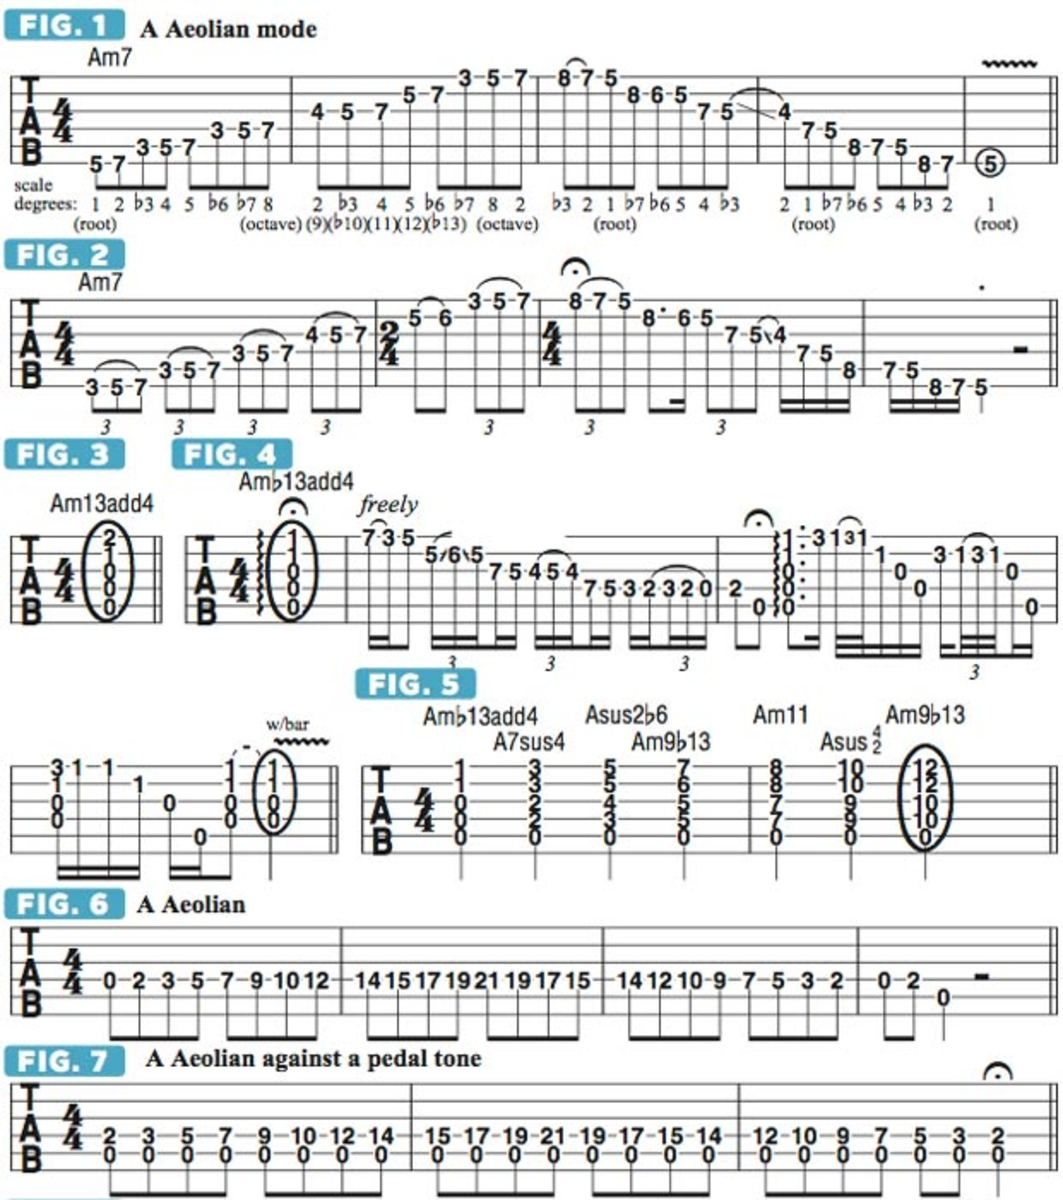 Devising Creative Chord Patterns and Voicings from the A